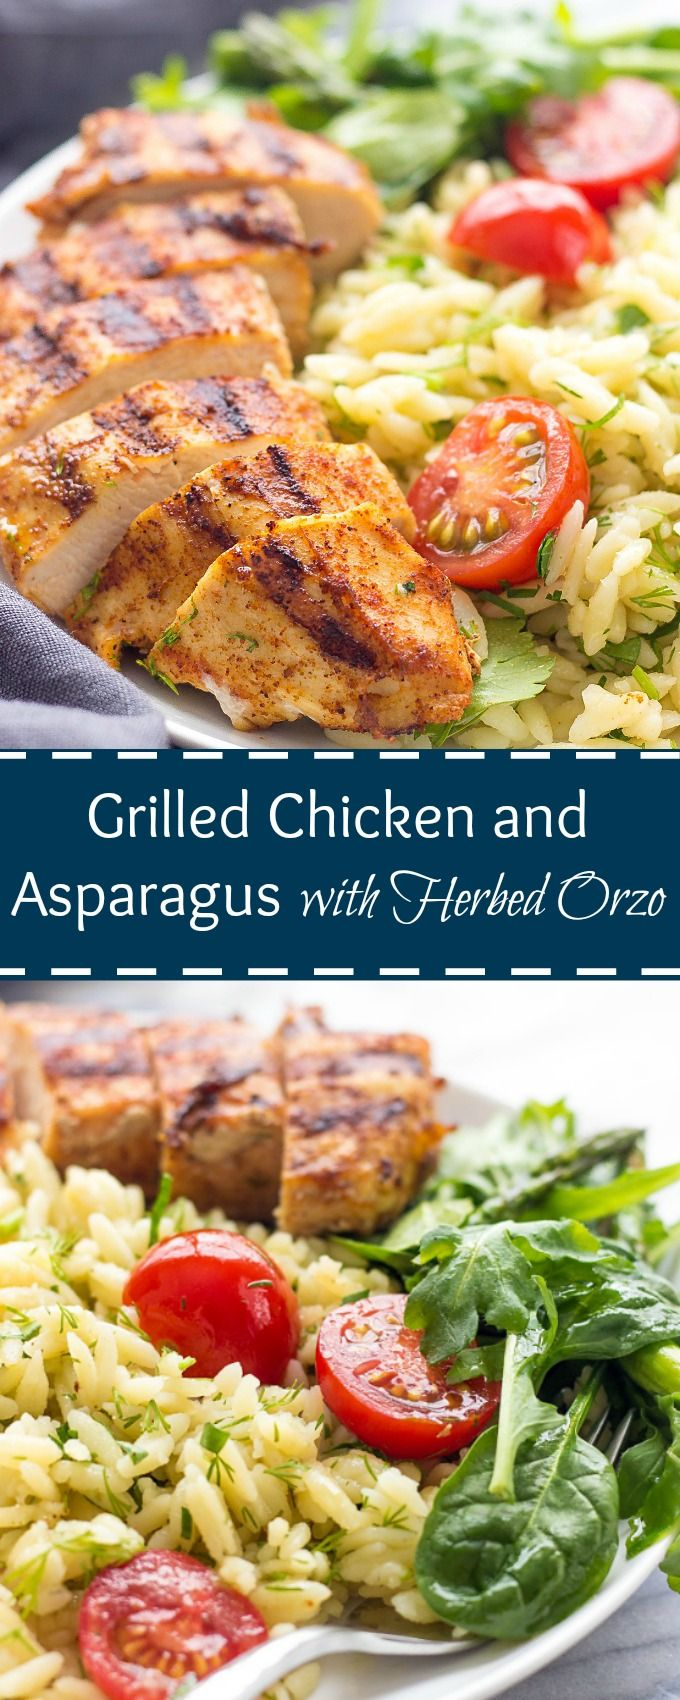 Grilled Chicken And Asparagus With Herbed Orzo via @https://www.pinterest.com/lavenderandmcrn/